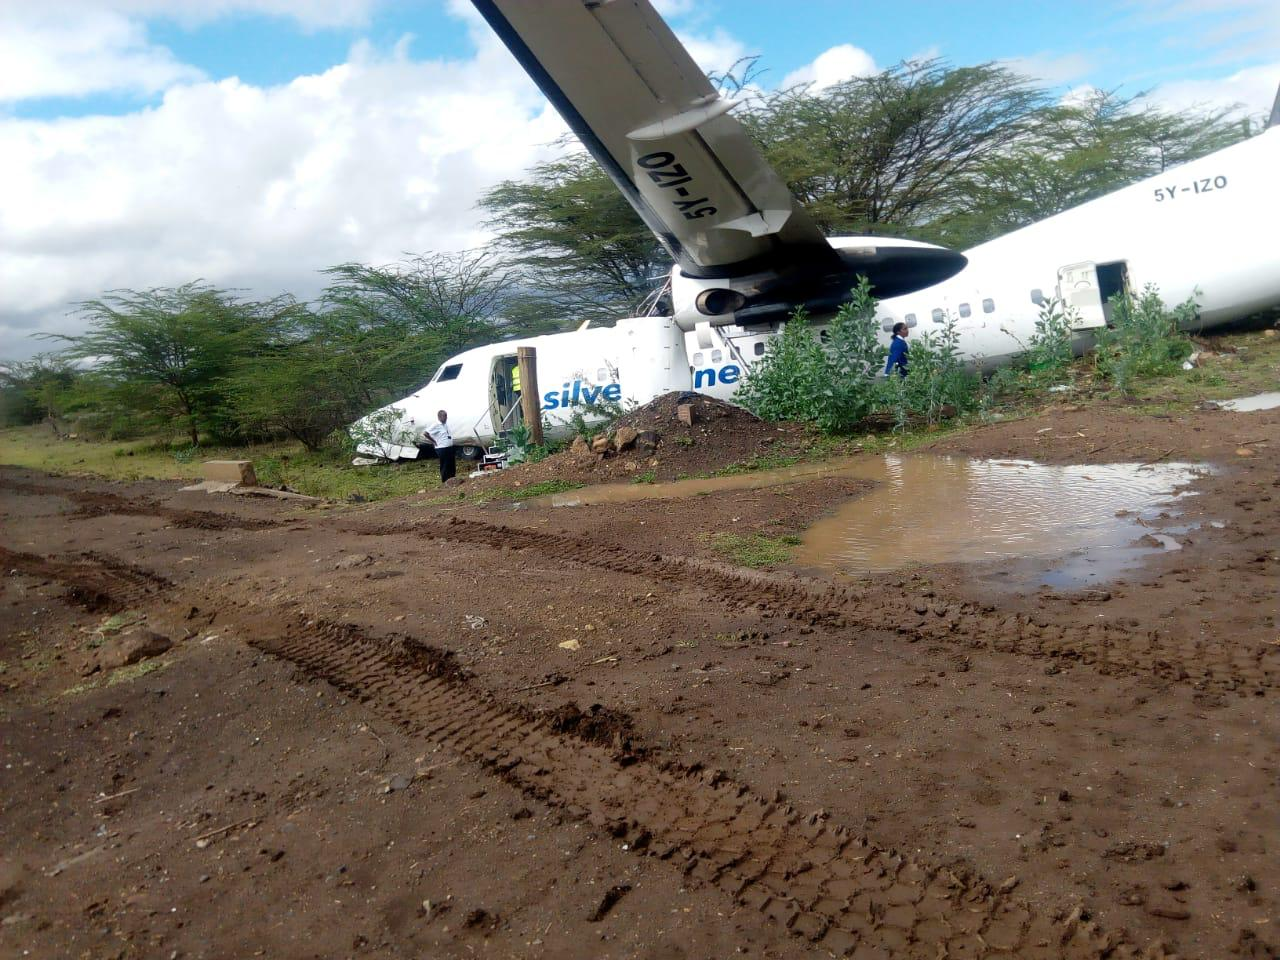 The plane crashed just before taking off at the Wilson Airport. www.businesstoday.co.ke